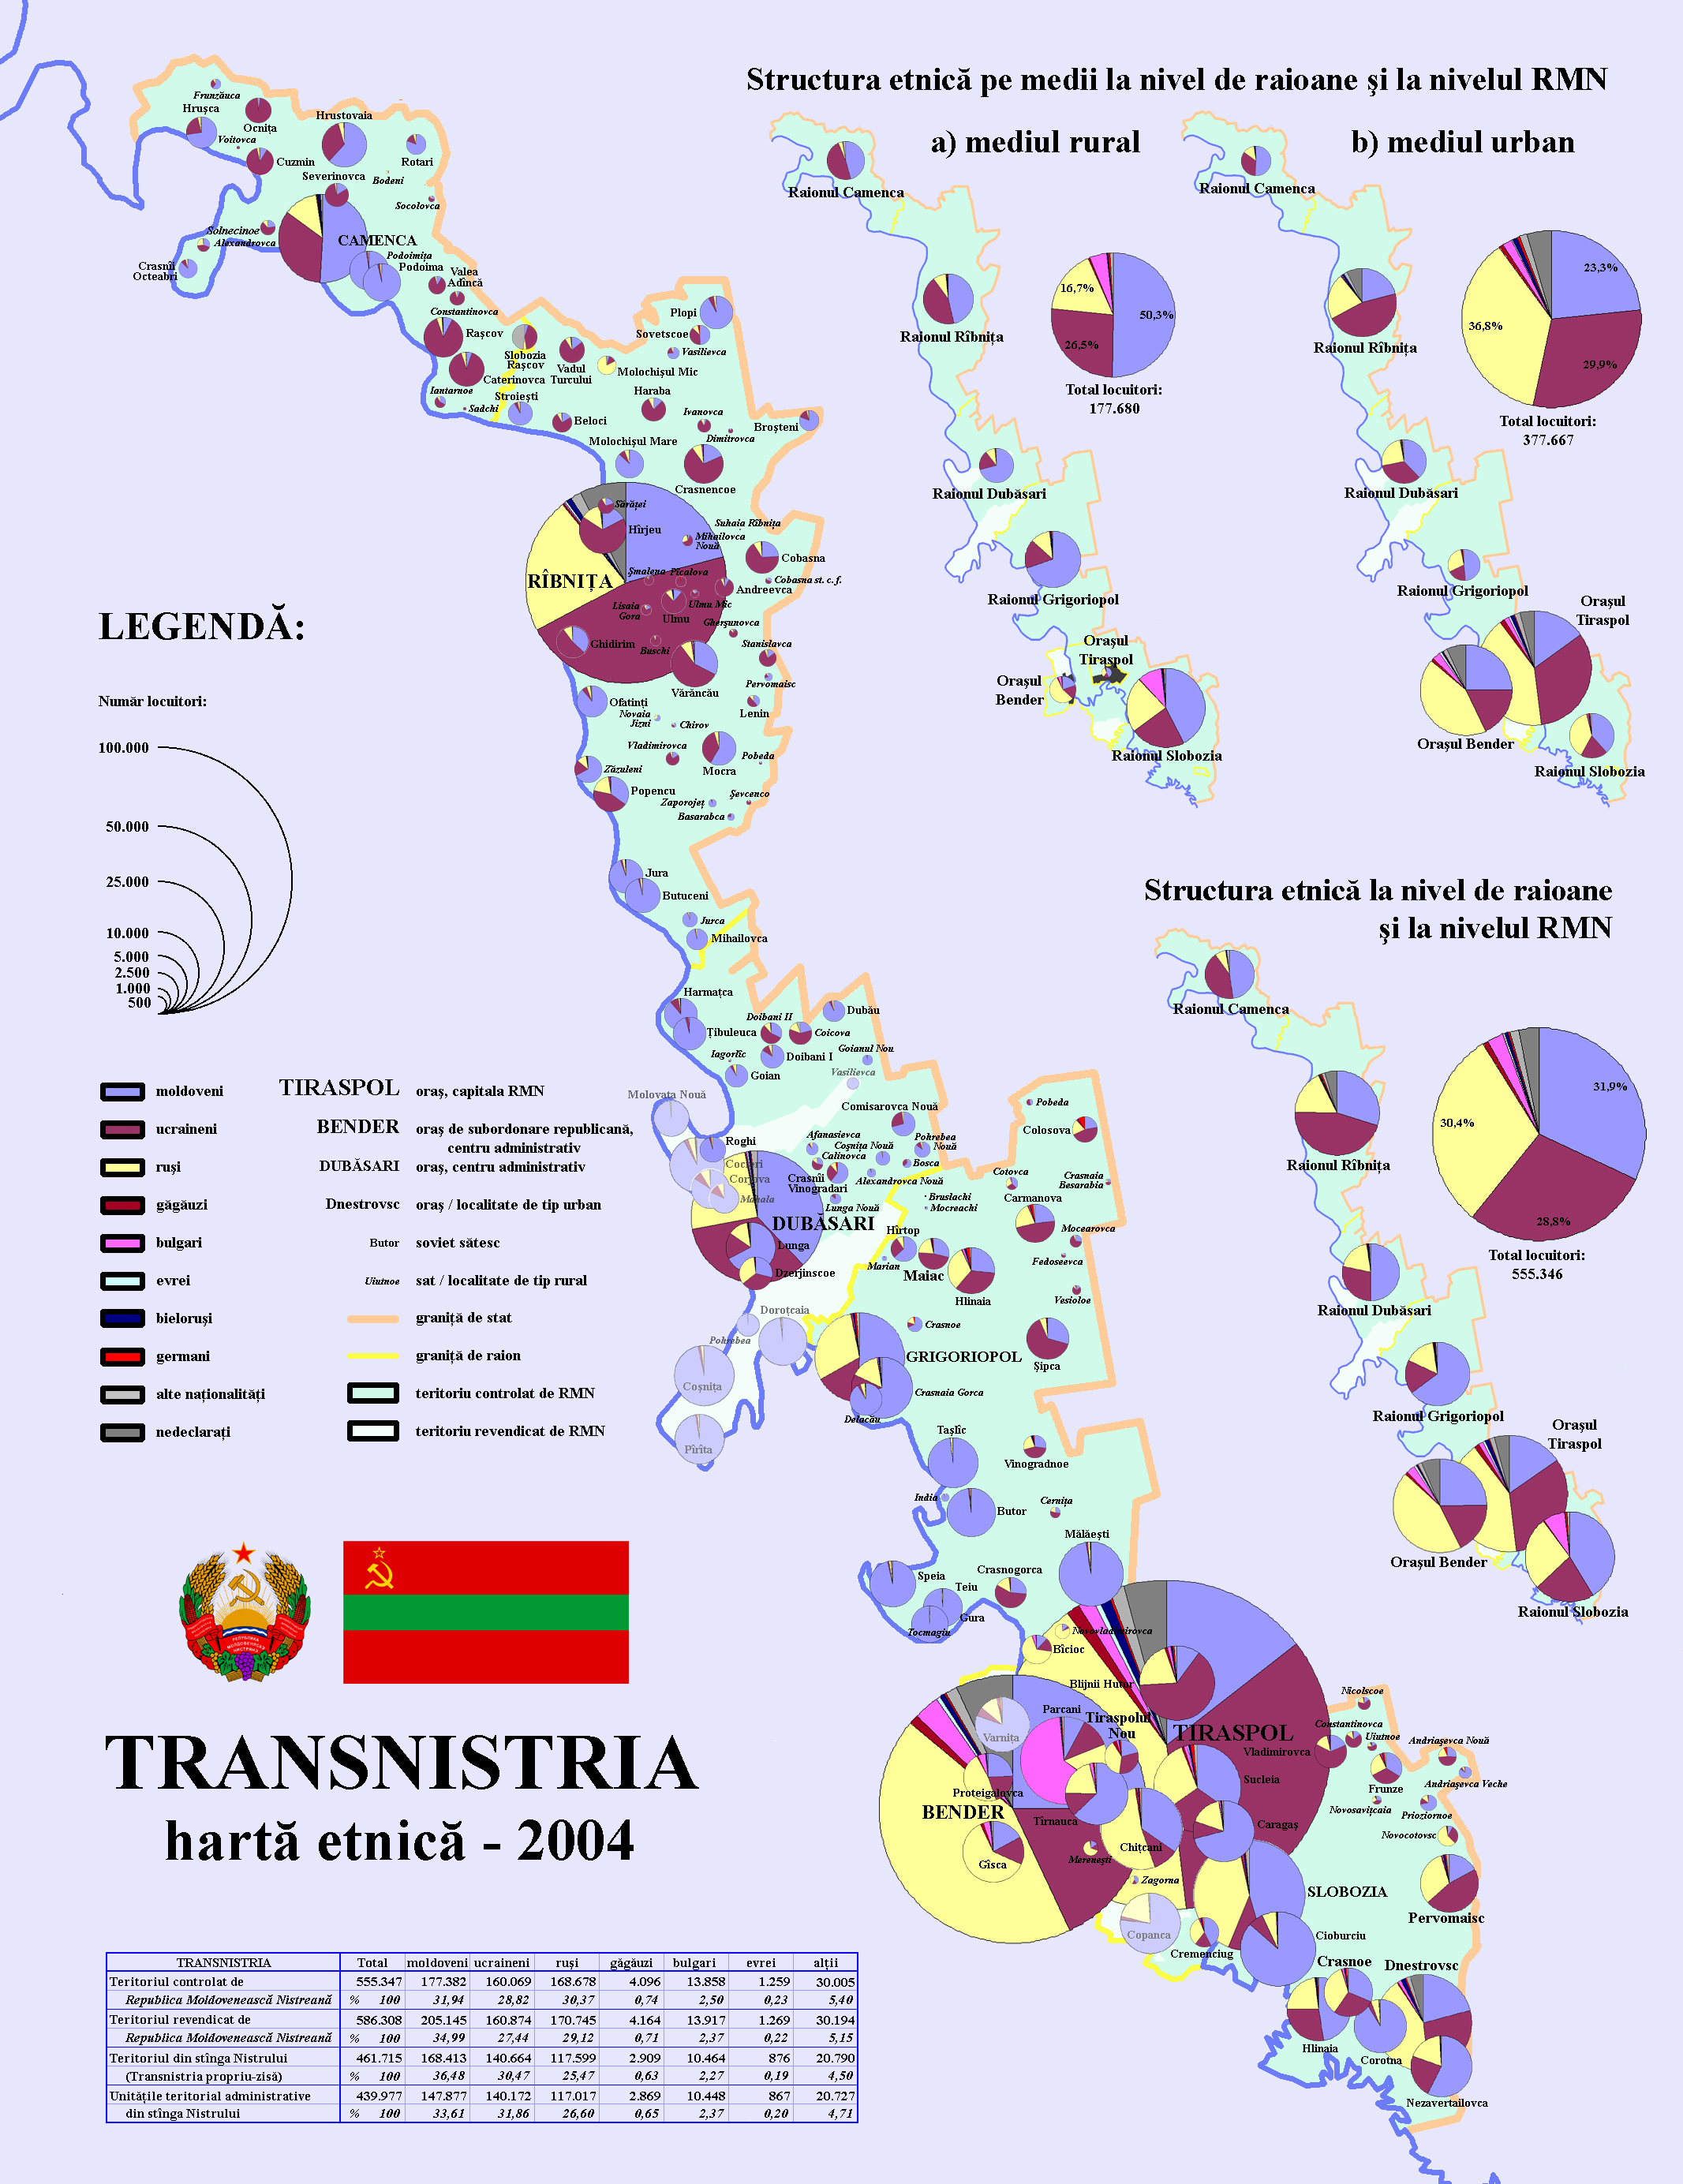 FileTransnistriaharta etnica 2004jpg Wikimedia Commons